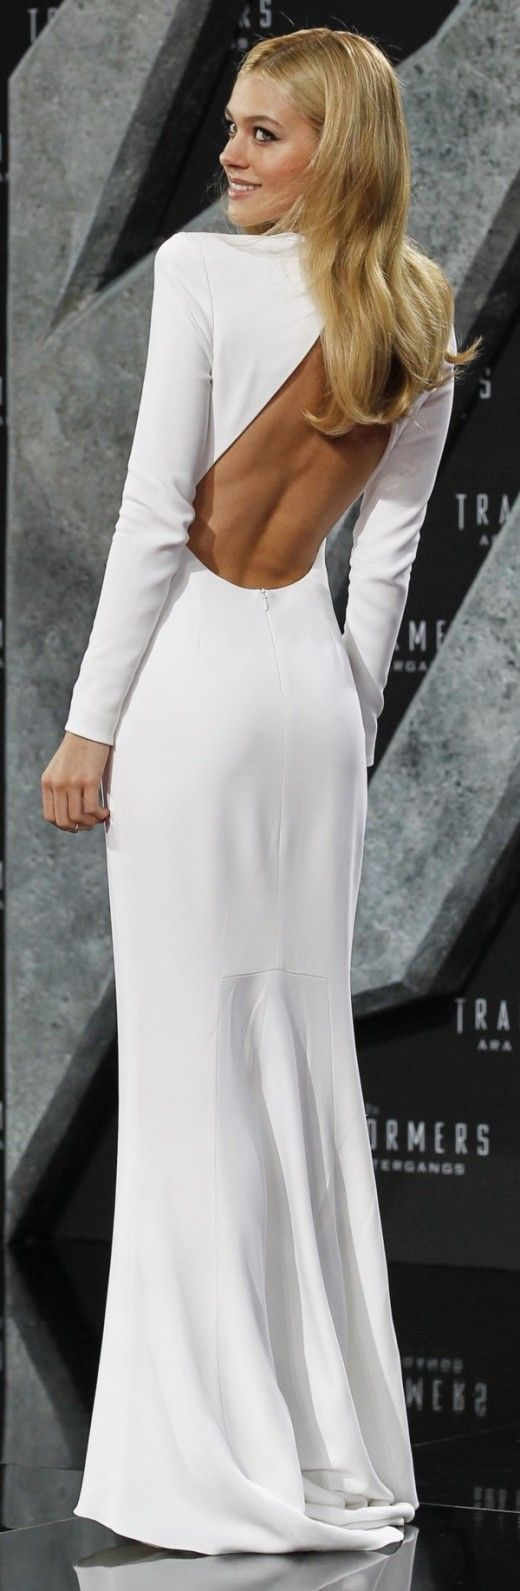 Stunning White Full Sleeve Backless Dress